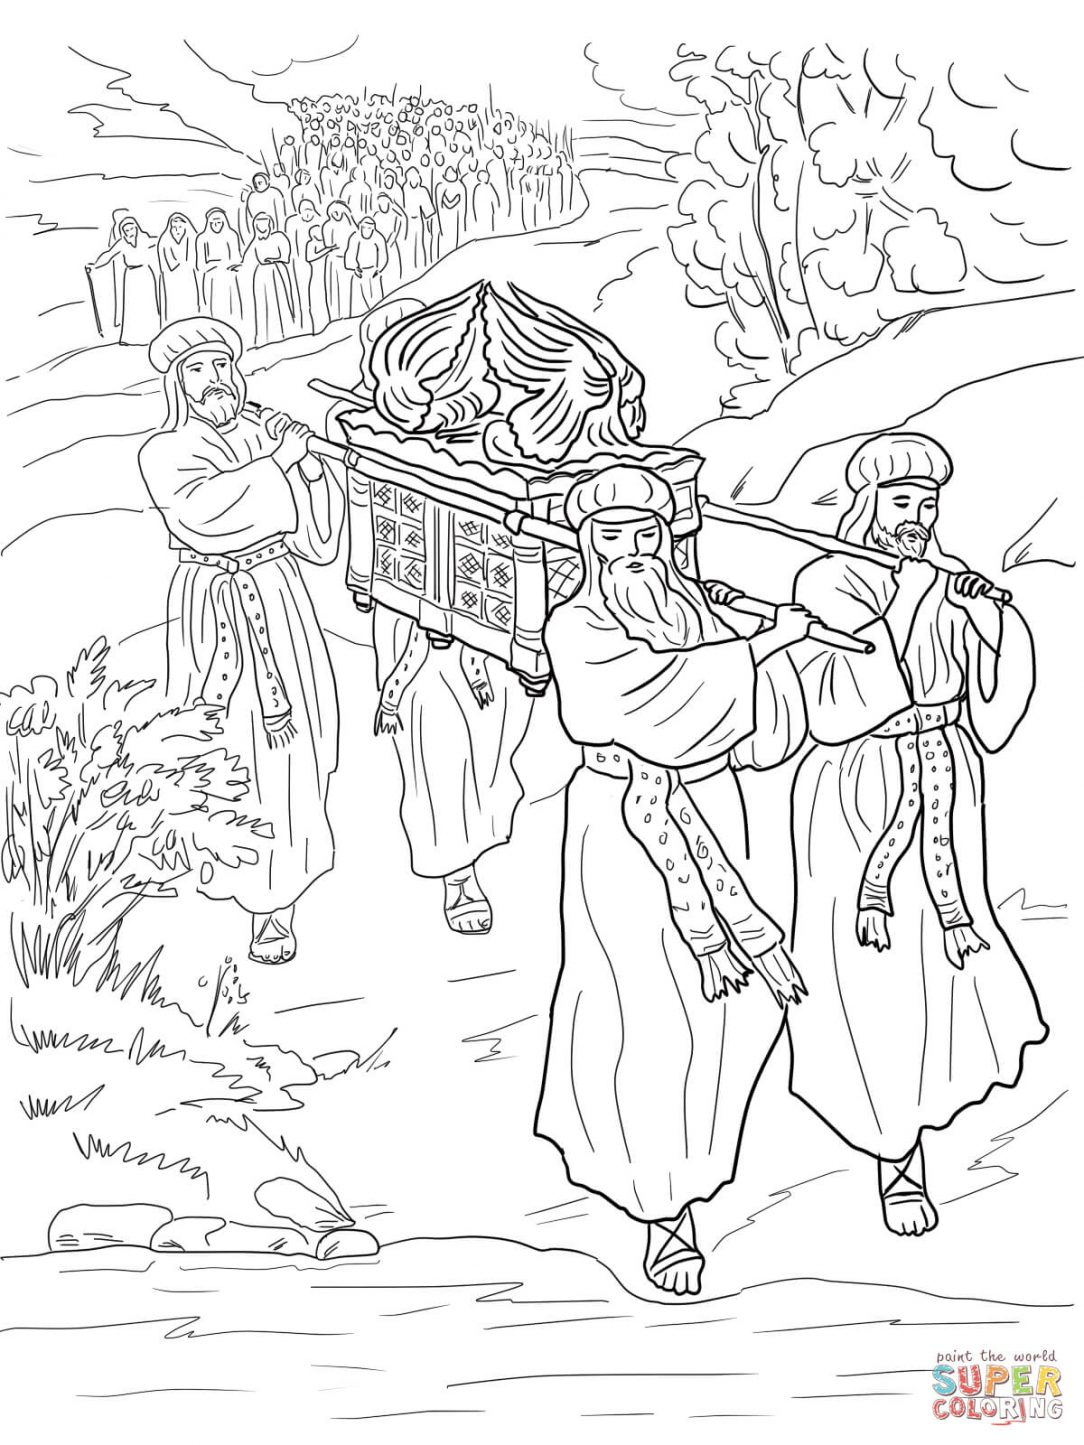 Joshua Fought The Battle Of Jericho Coloring Page Achan Coloring Page Sin Sheet Free S Barriotaqueria